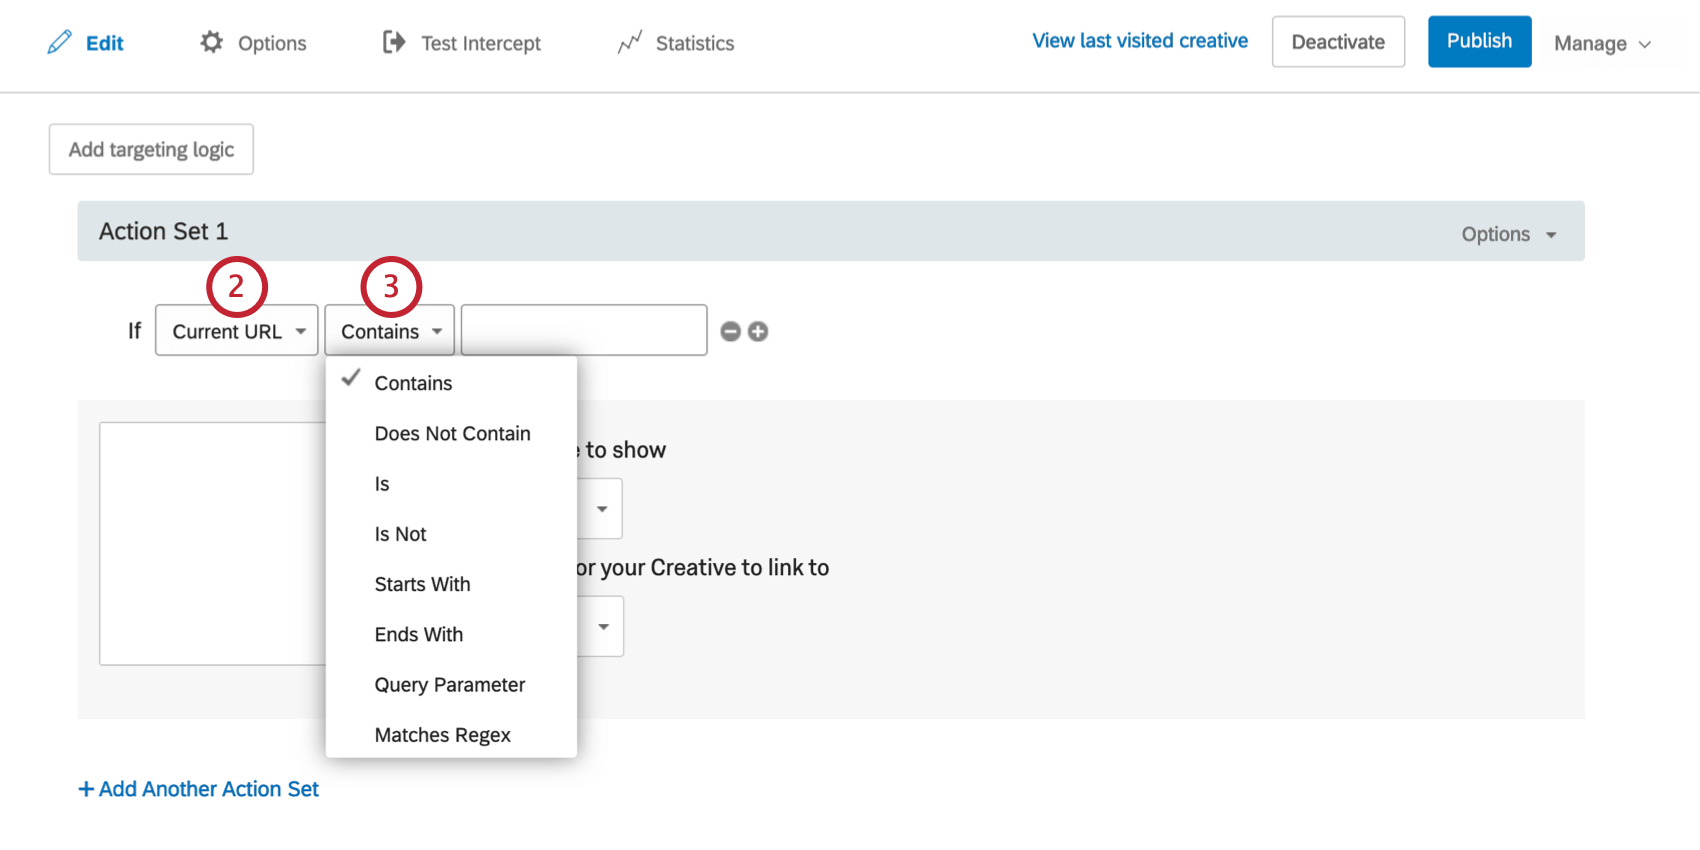 The first field says Current URL. The second field says Contains and has a dropdown to show other options